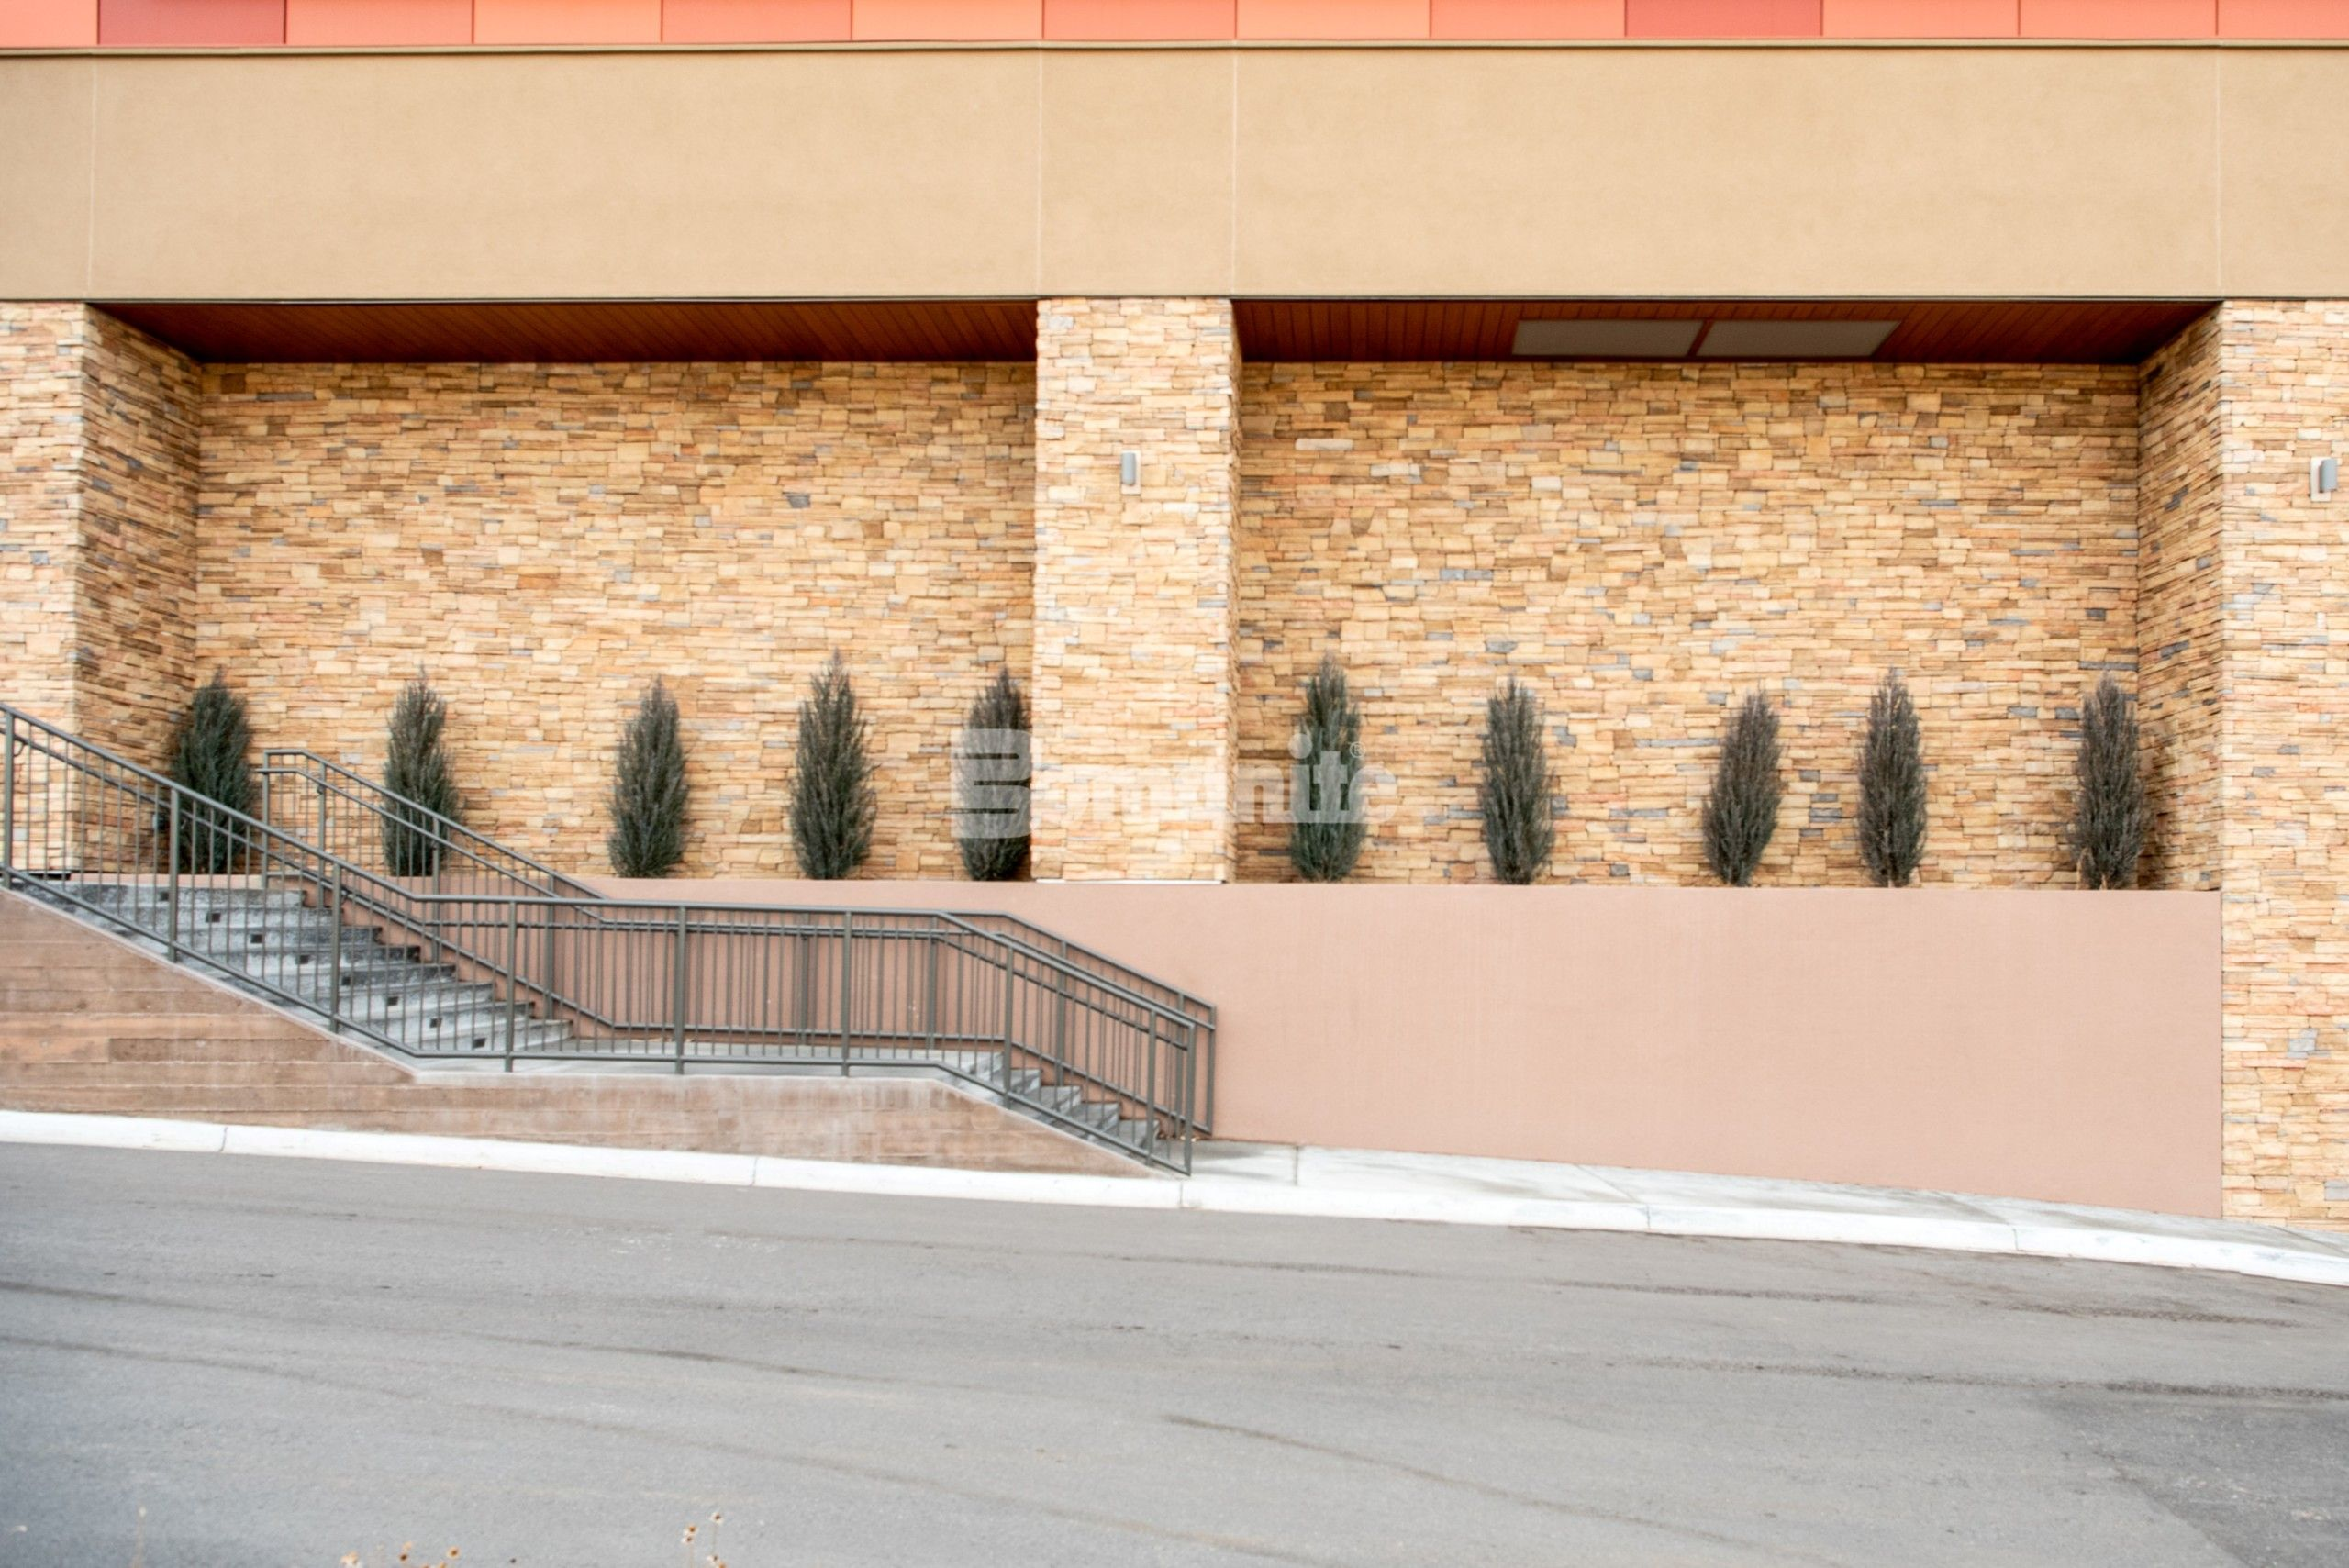 Colorado Hardscapes used the Bomanite Micro-Top ST system to correct a previous poured board formed wall installation and bring them up to code that now accent the exterior finishes on the building and provide a smooth and sleek appearance.